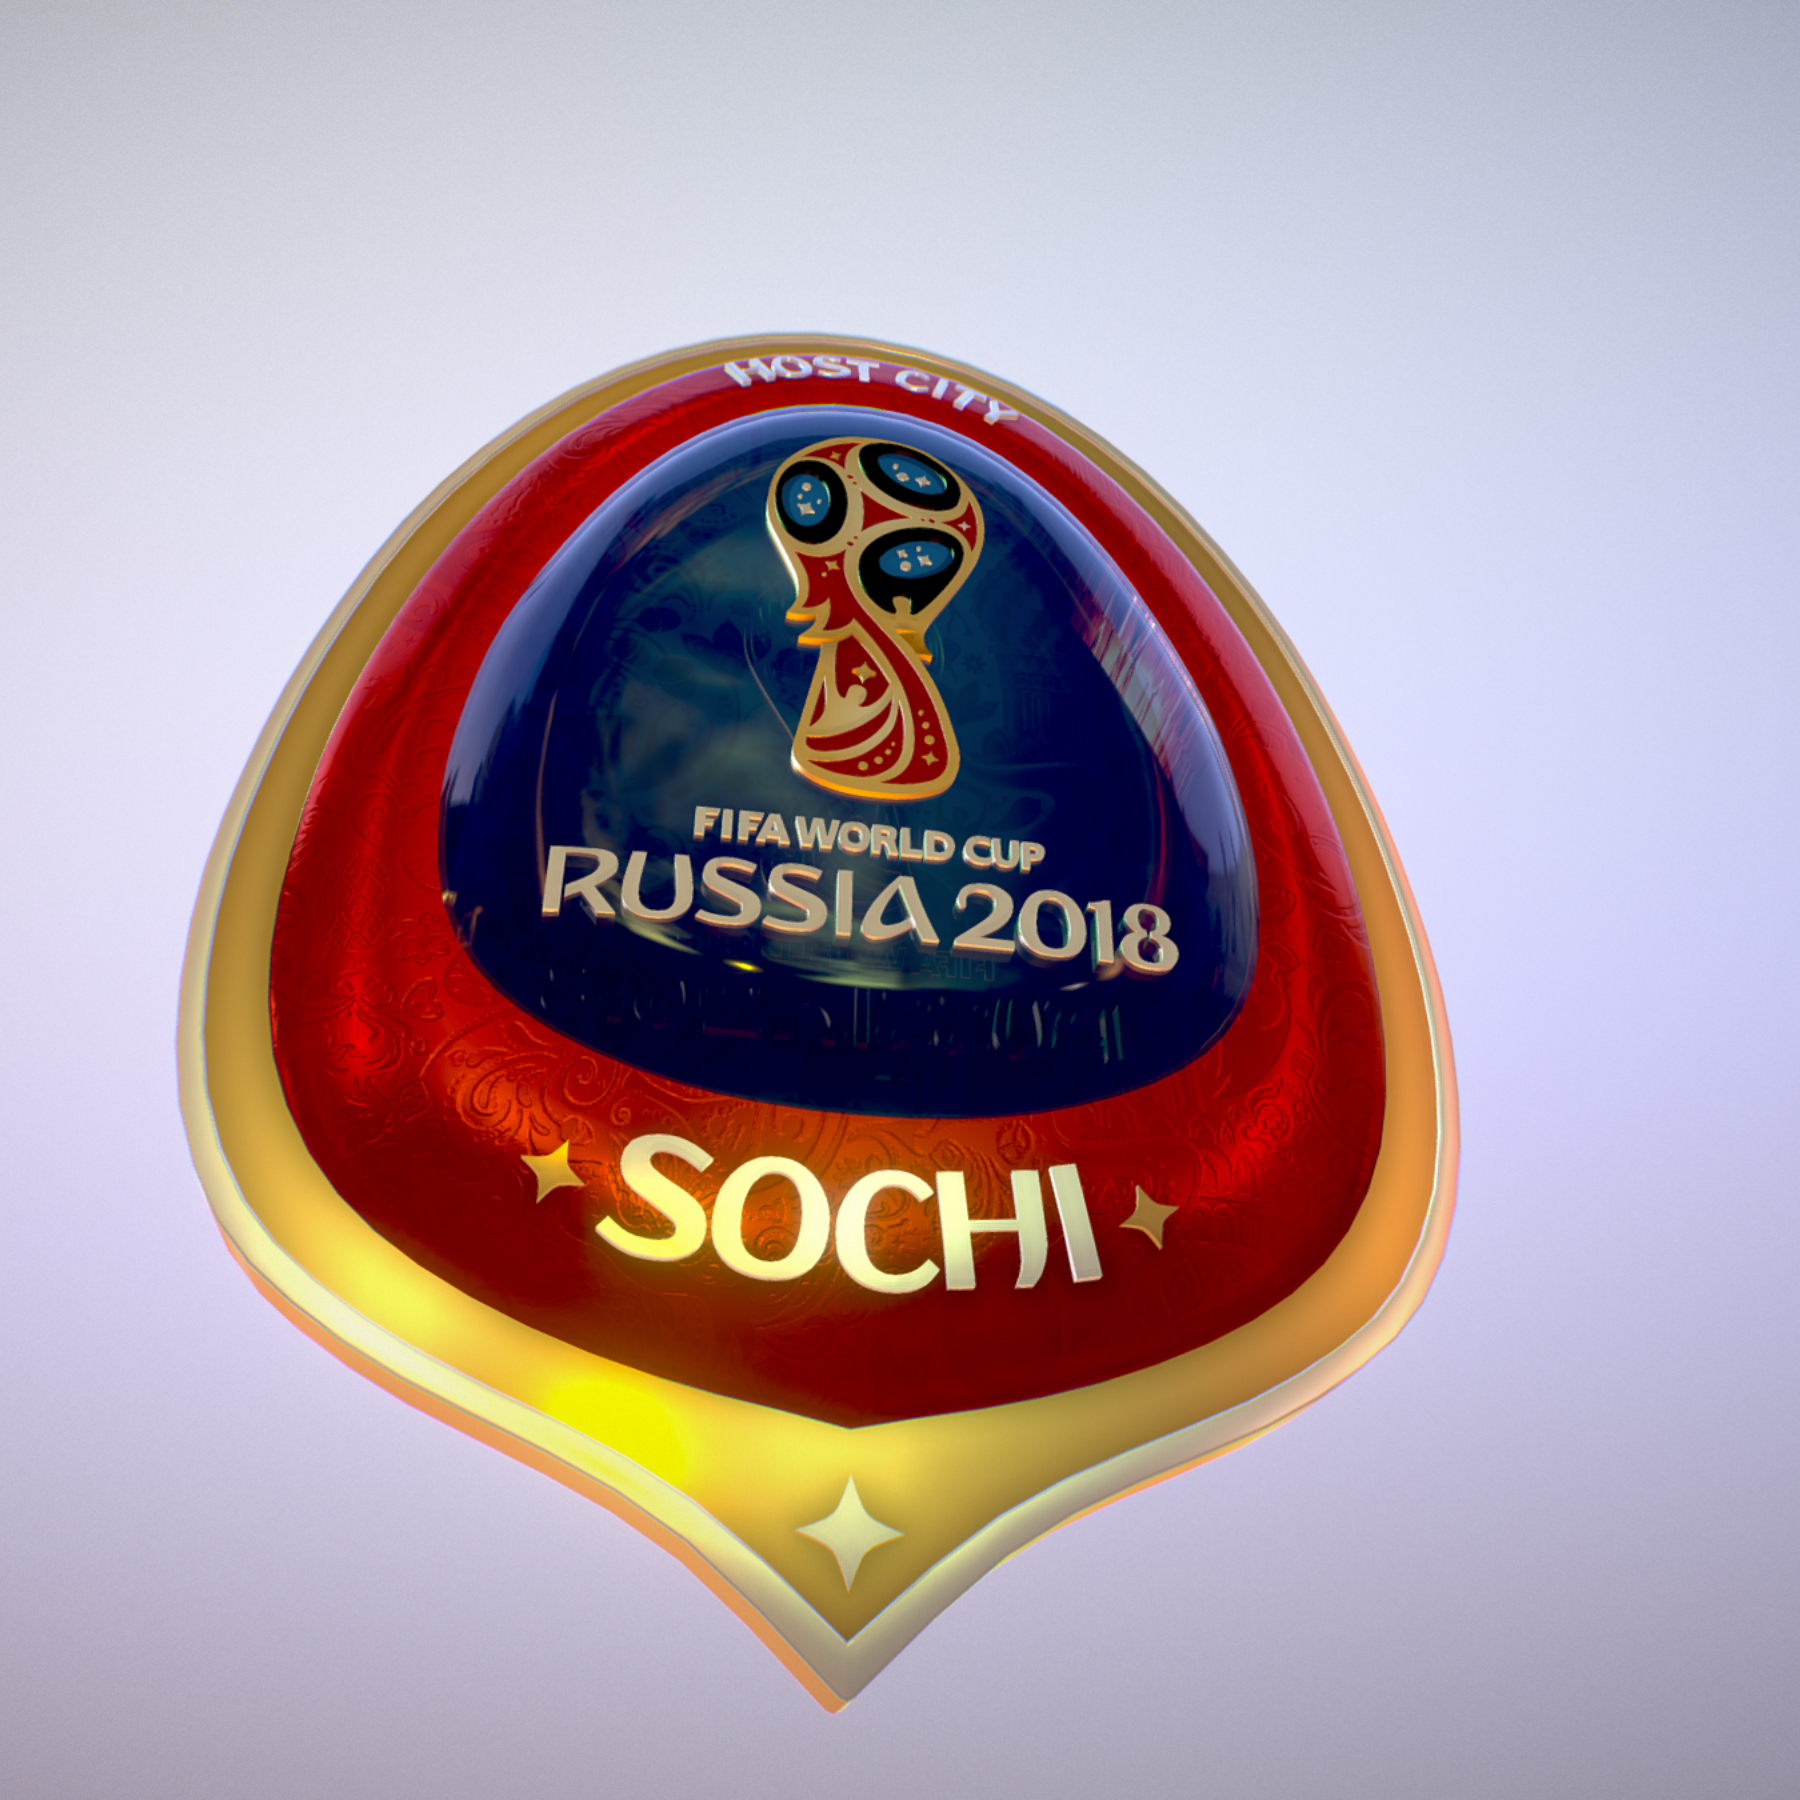 sochi host city world cup russia 2018 symbol 3d model max  fbx ma mb obj 271712